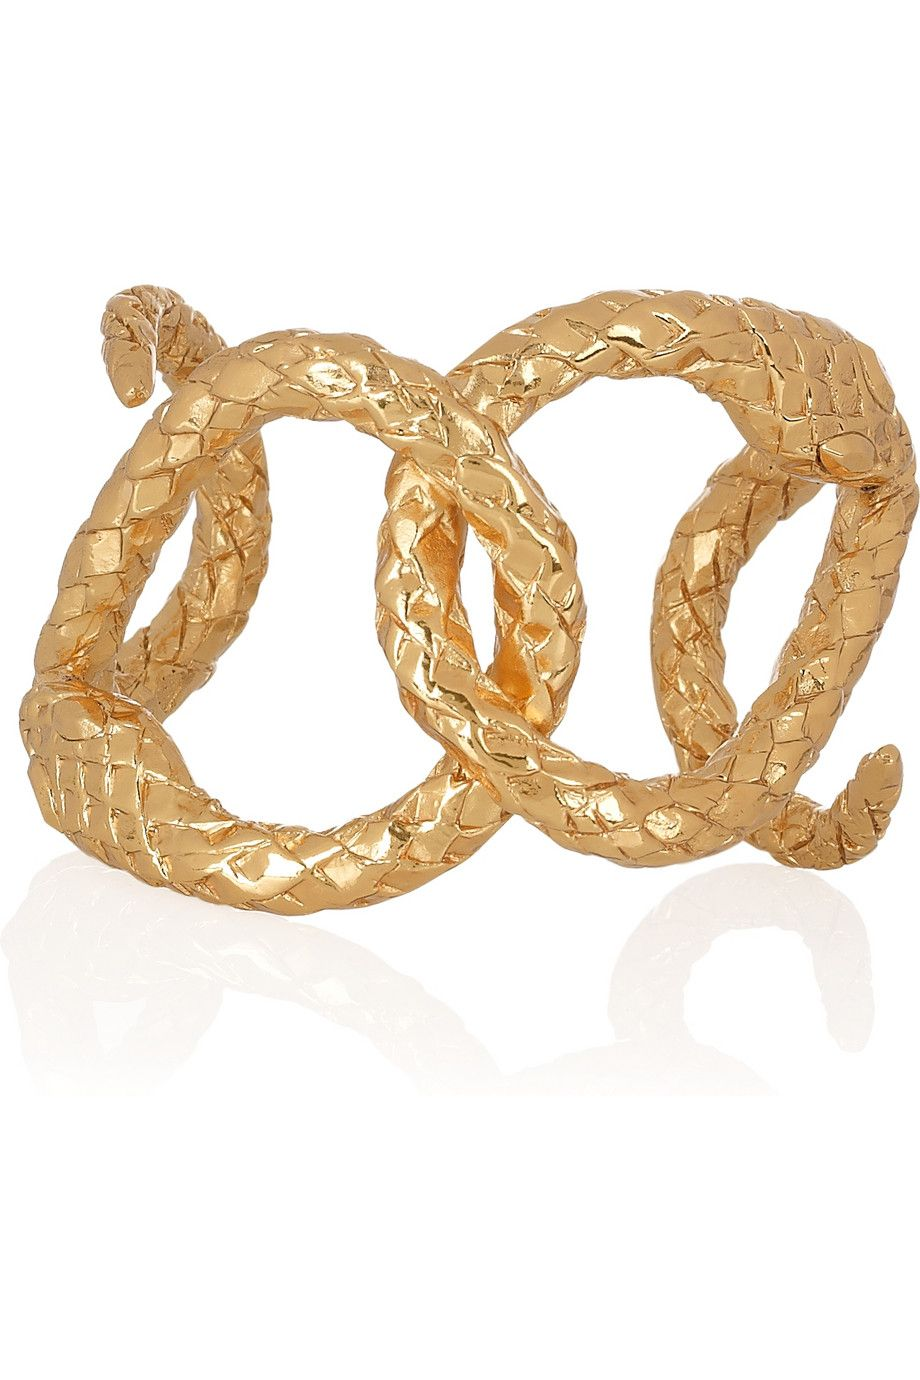 adf0c18dc06 Yves Saint Laurent gold-plated brass serpent cuff   The Dragon's ...